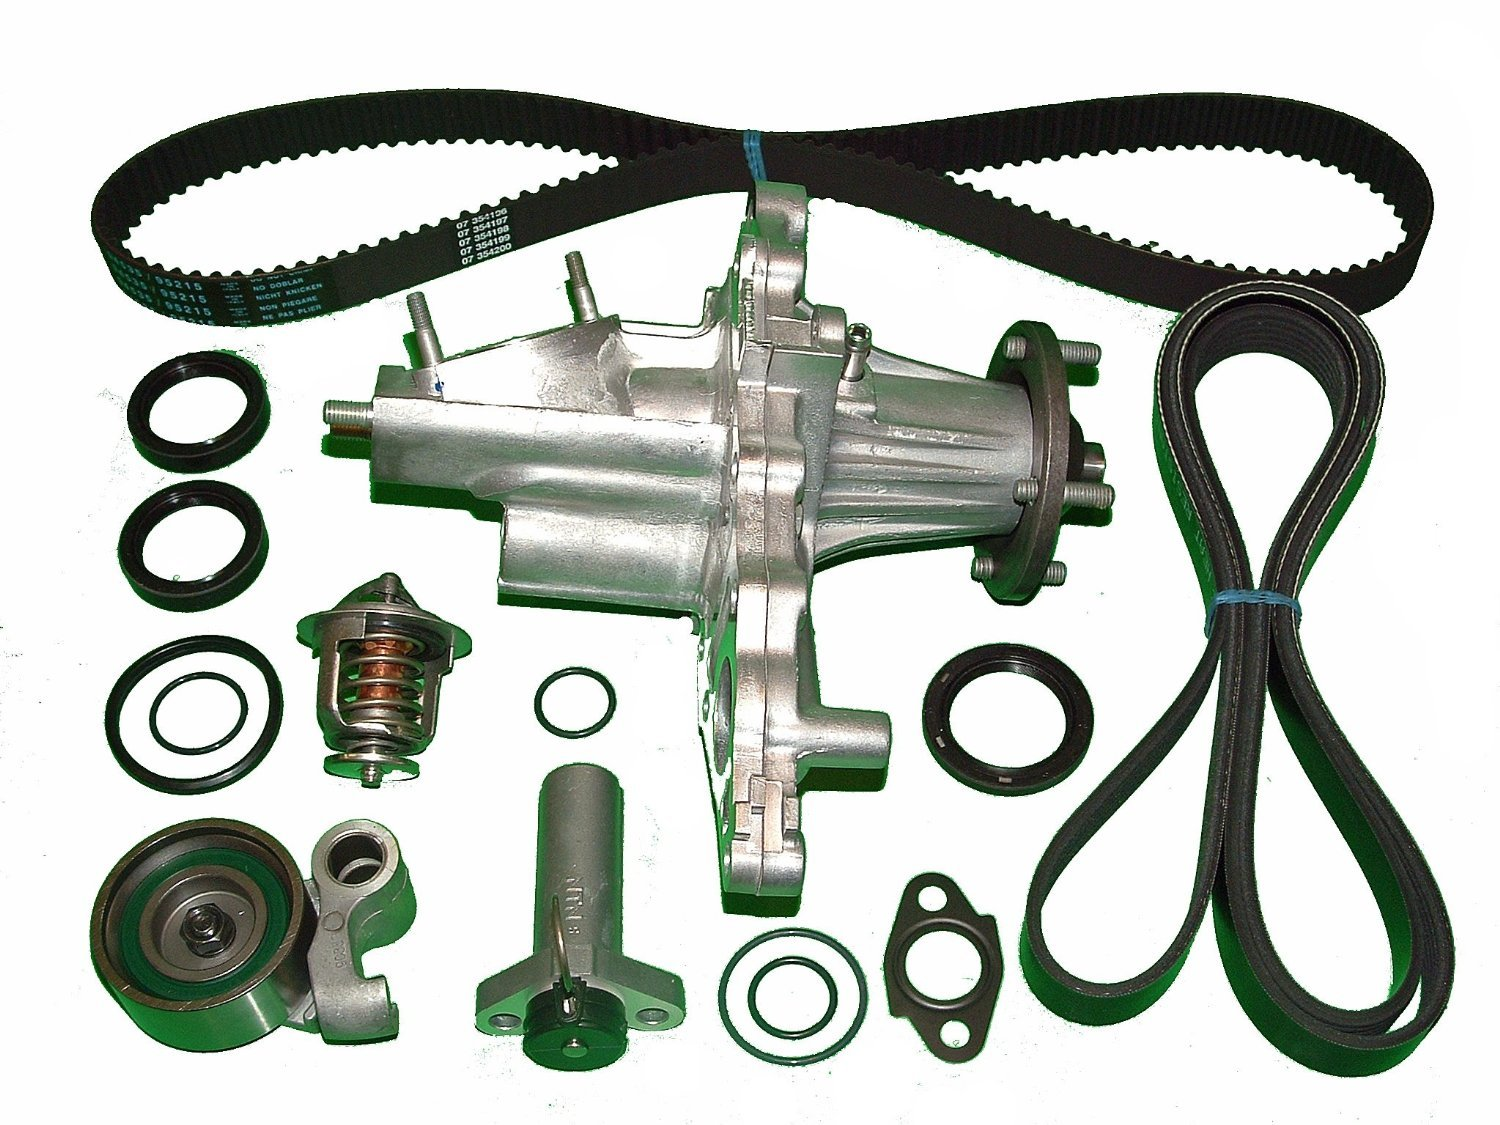 Correa de distribución Kit Lexus IS300 (2001 2002 2003 2004 2005): Amazon.es: Coche y moto